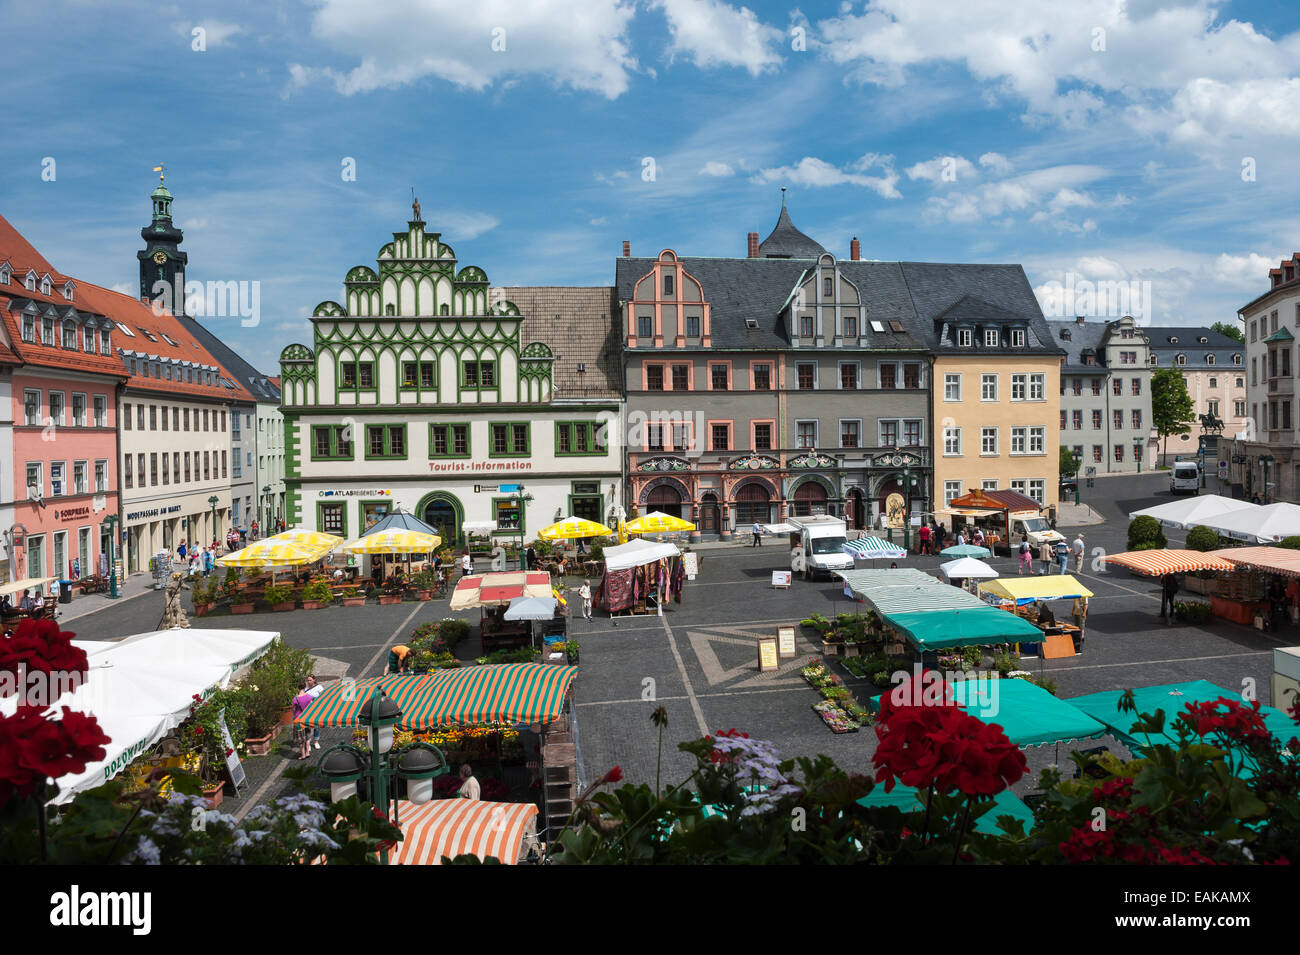 Weekly market on the market square in front of Lucas Cranach house and a town house with half-timbered gables, Weimar, - Stock Image